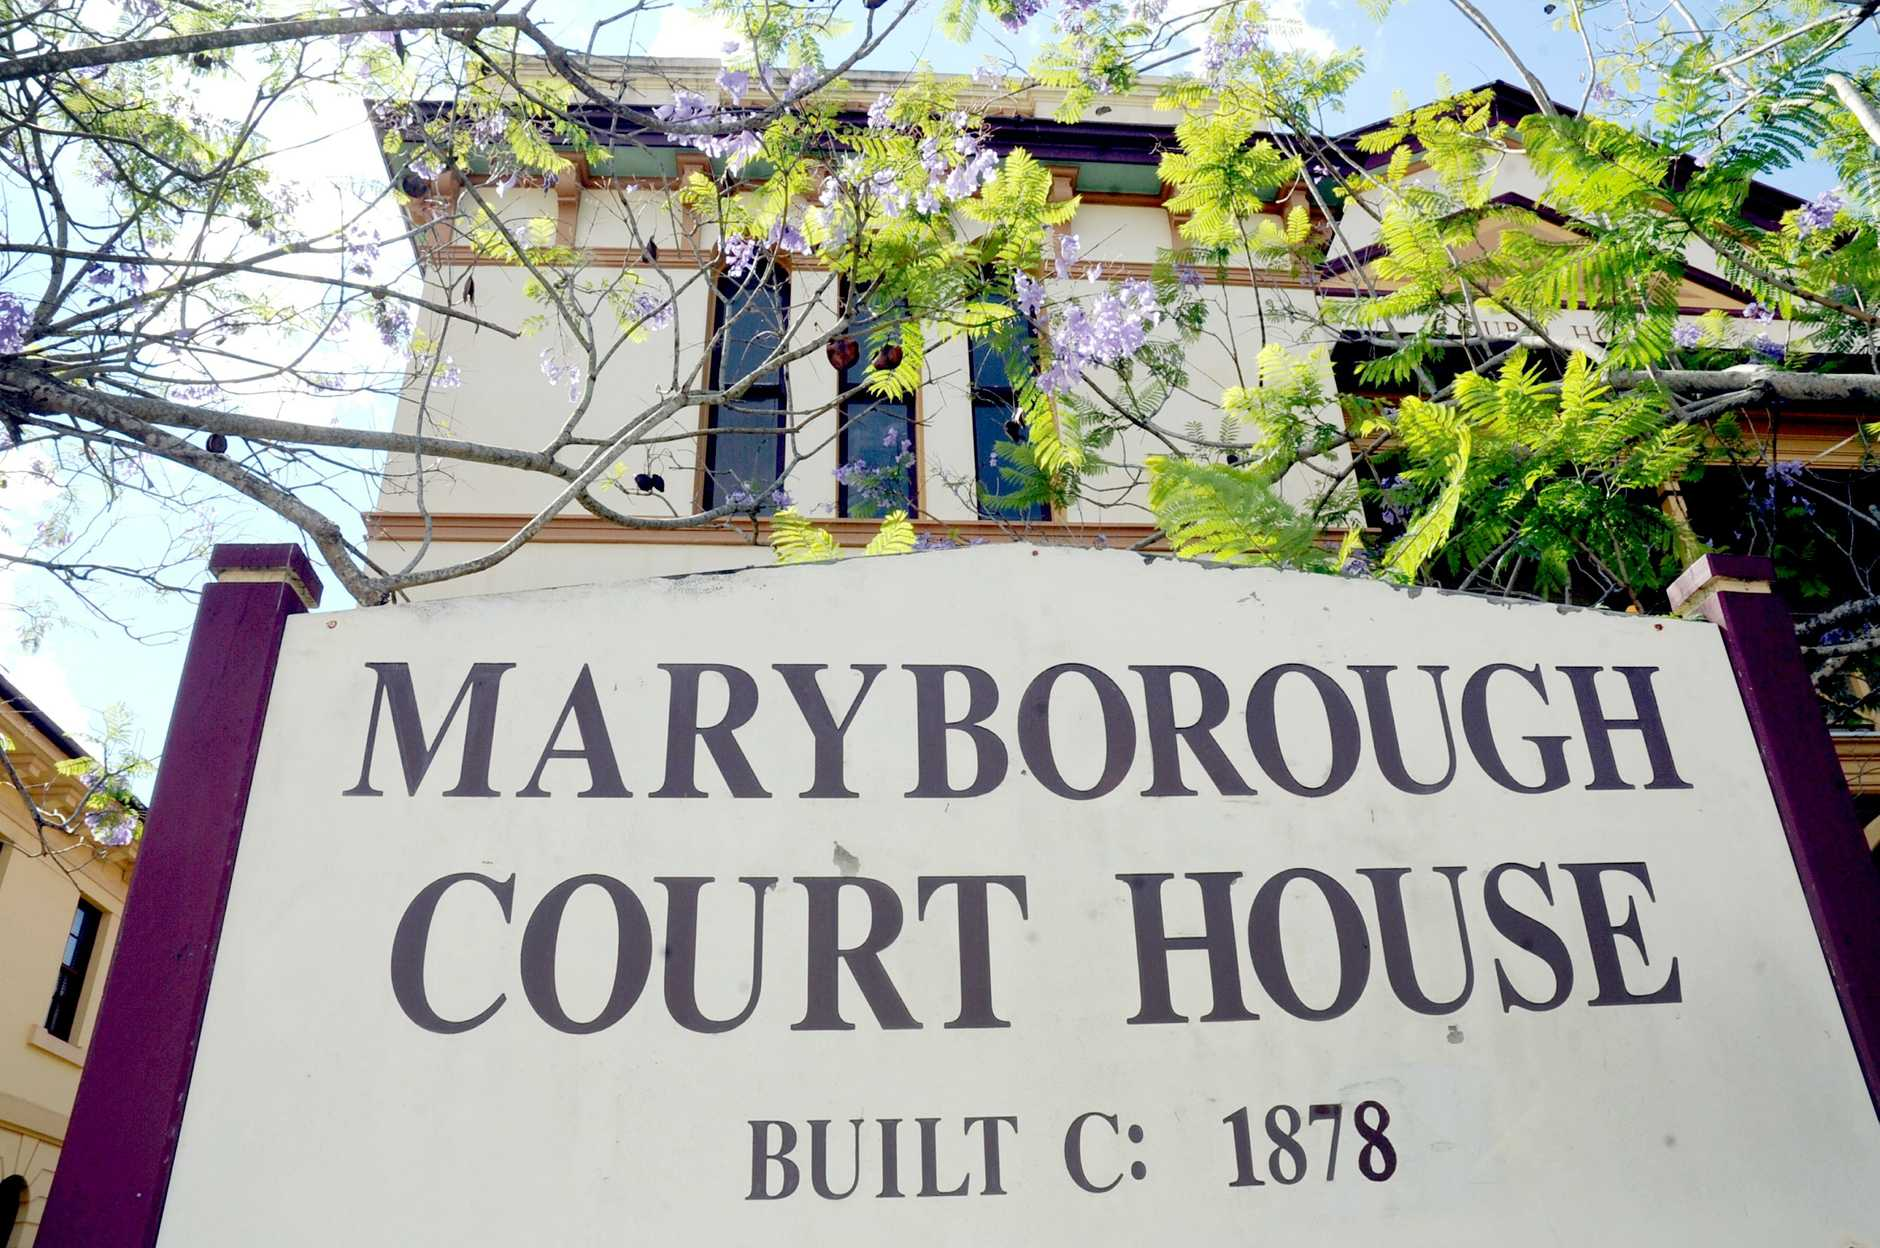 Maryborough Court House.